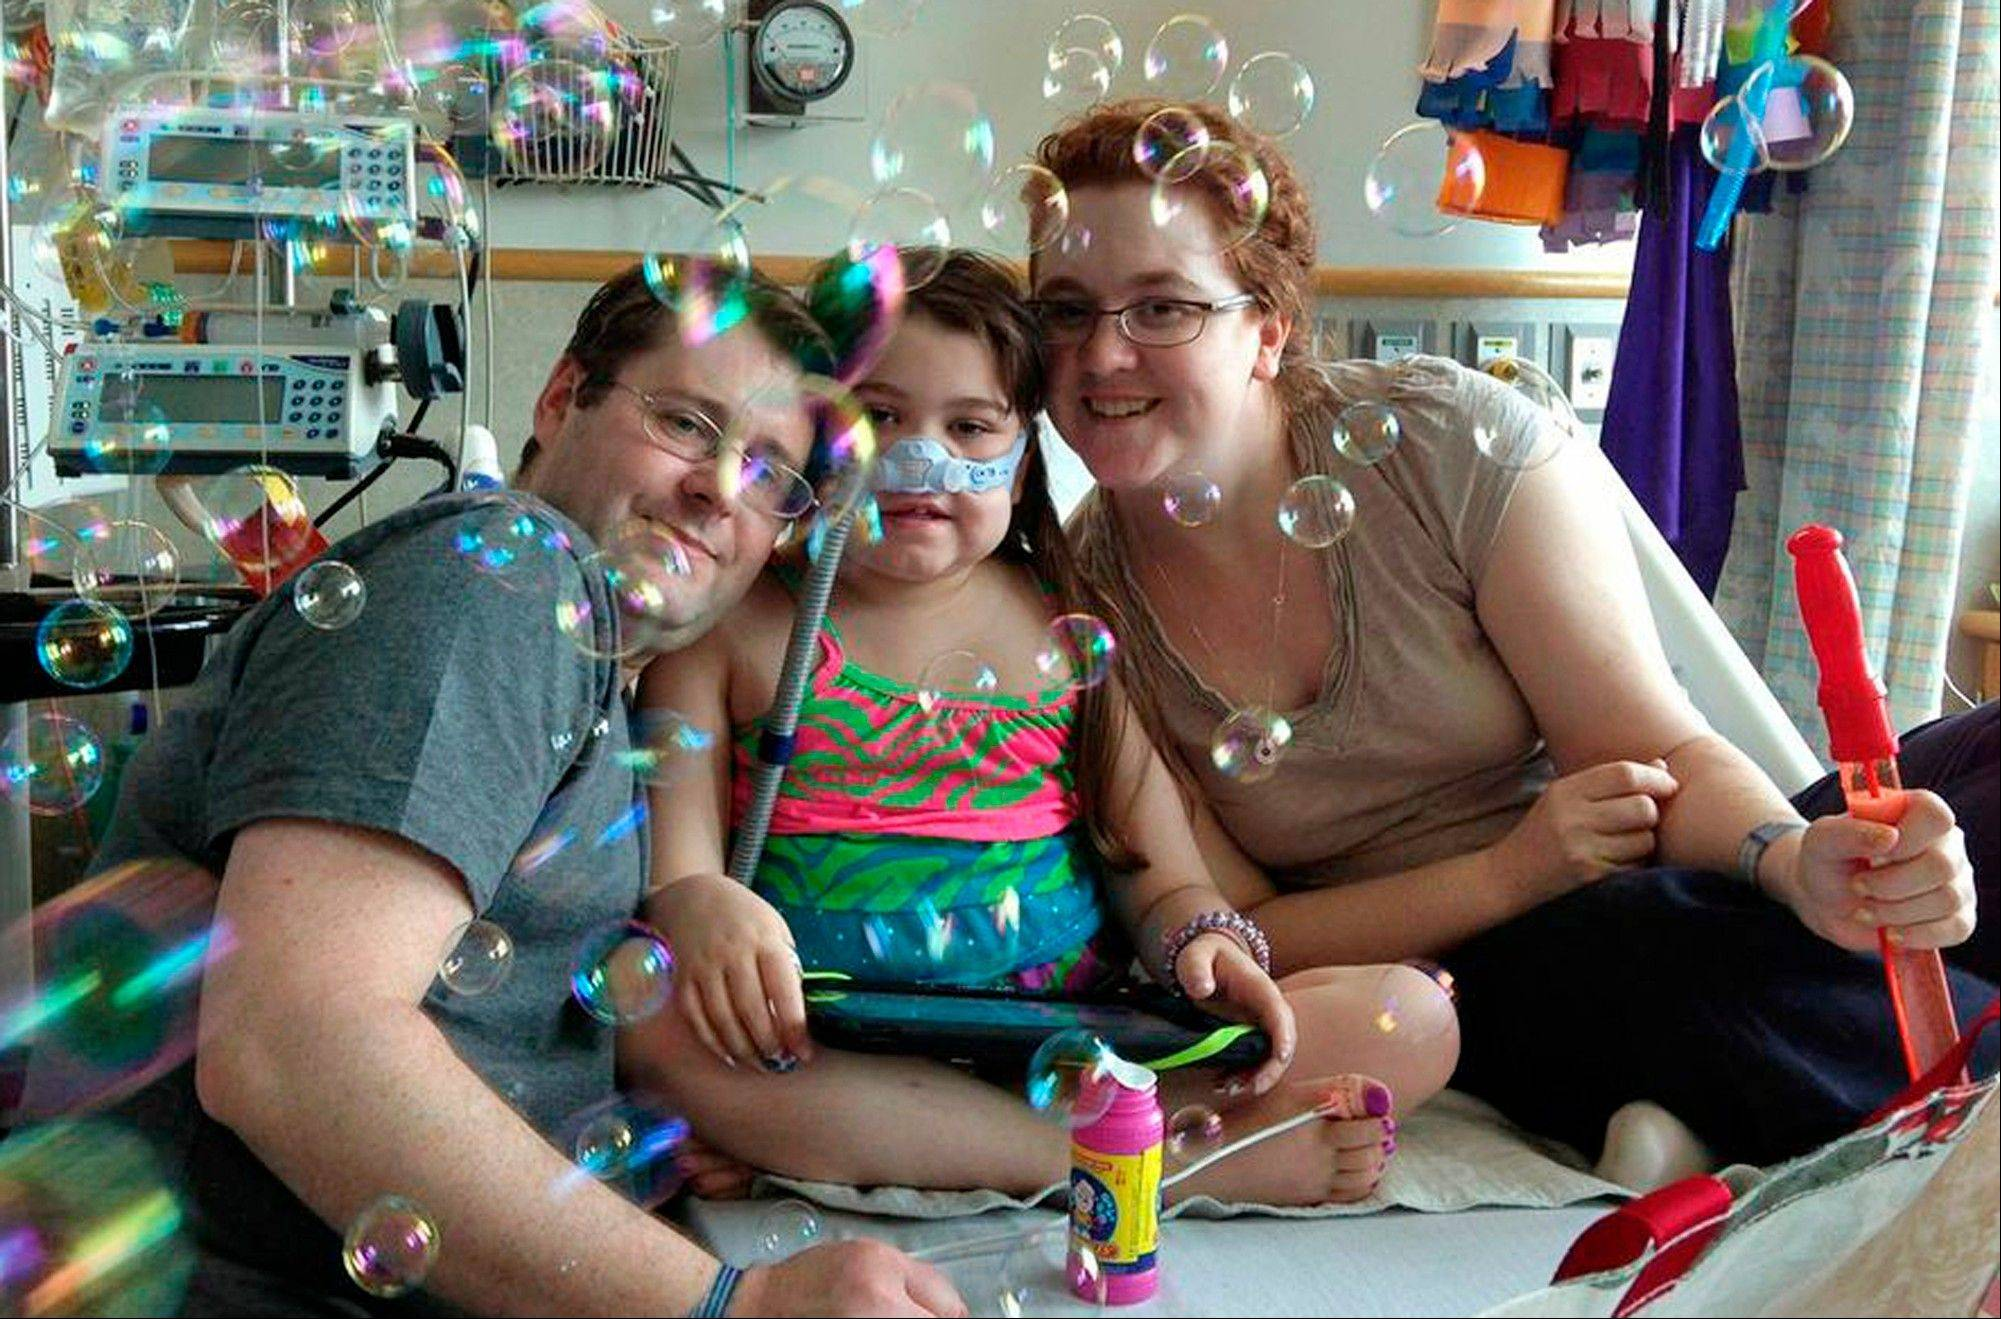 A 10-year-old Pennsylvania girl, Sarah Murnaghan, who is recovering from two double lung transplants, is expected to be released from the hospital this week.